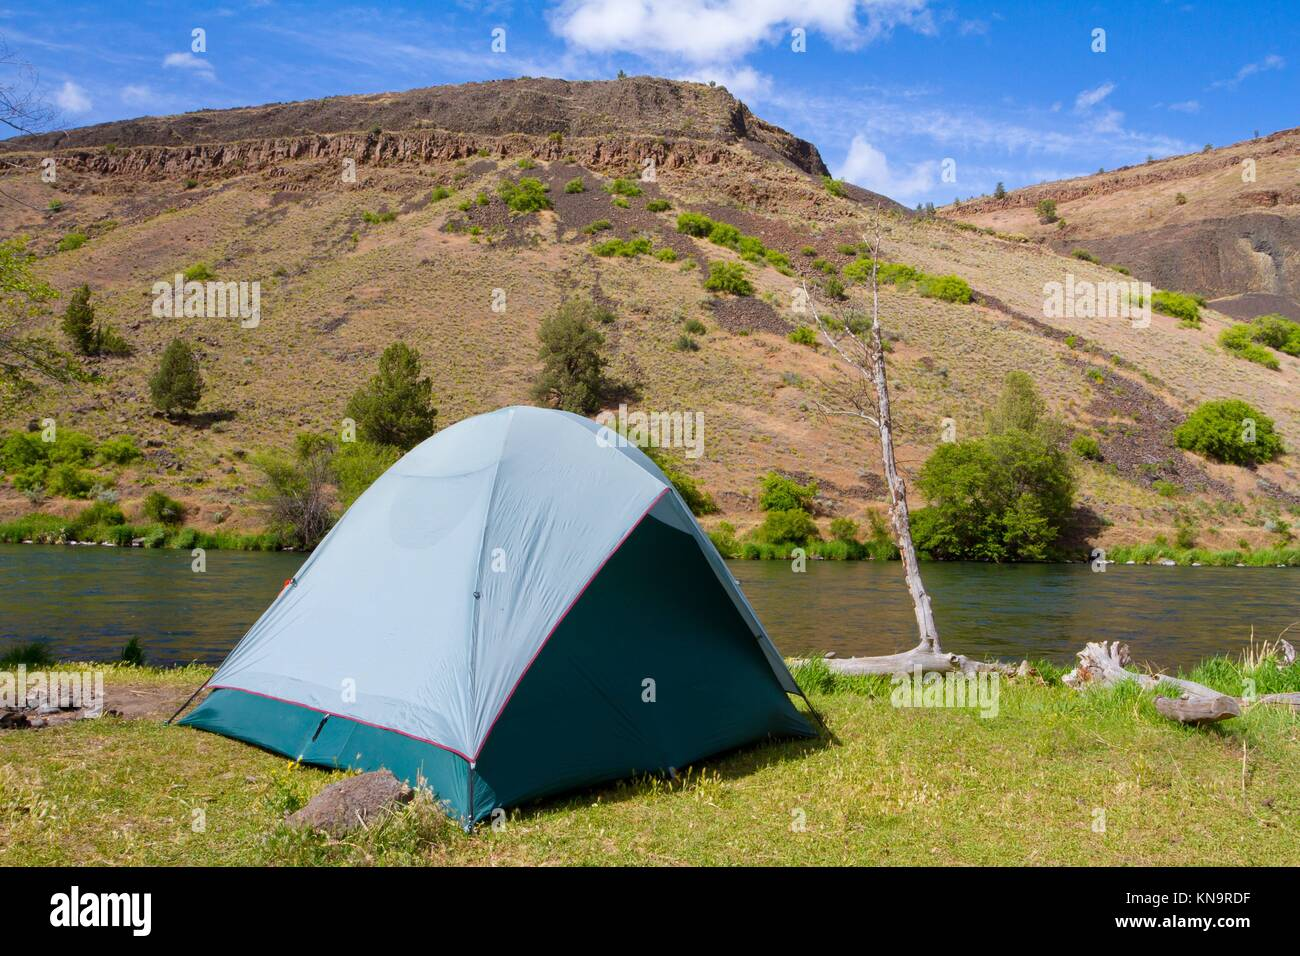 A rustic tent campsite on the Deschutes River in Oregon shows a tent setup next to a boat and the river. This is - Stock Image